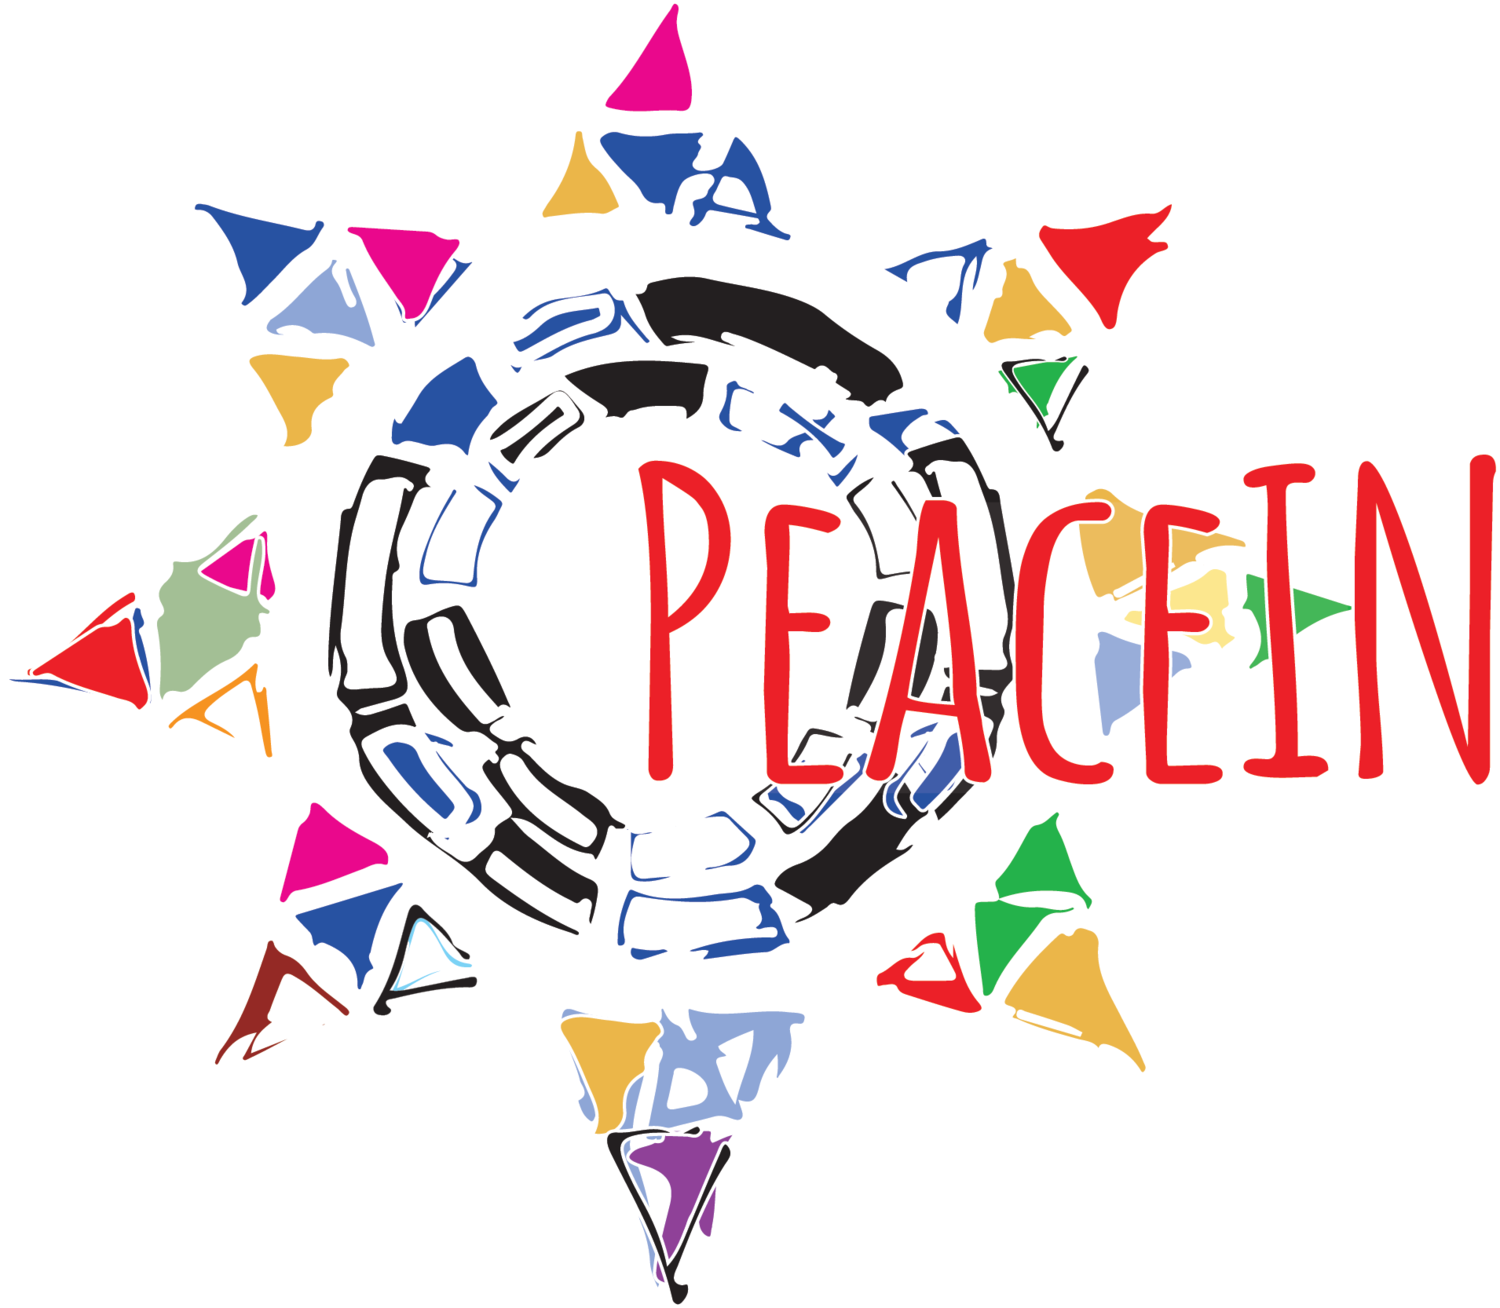 Peace in logo.png